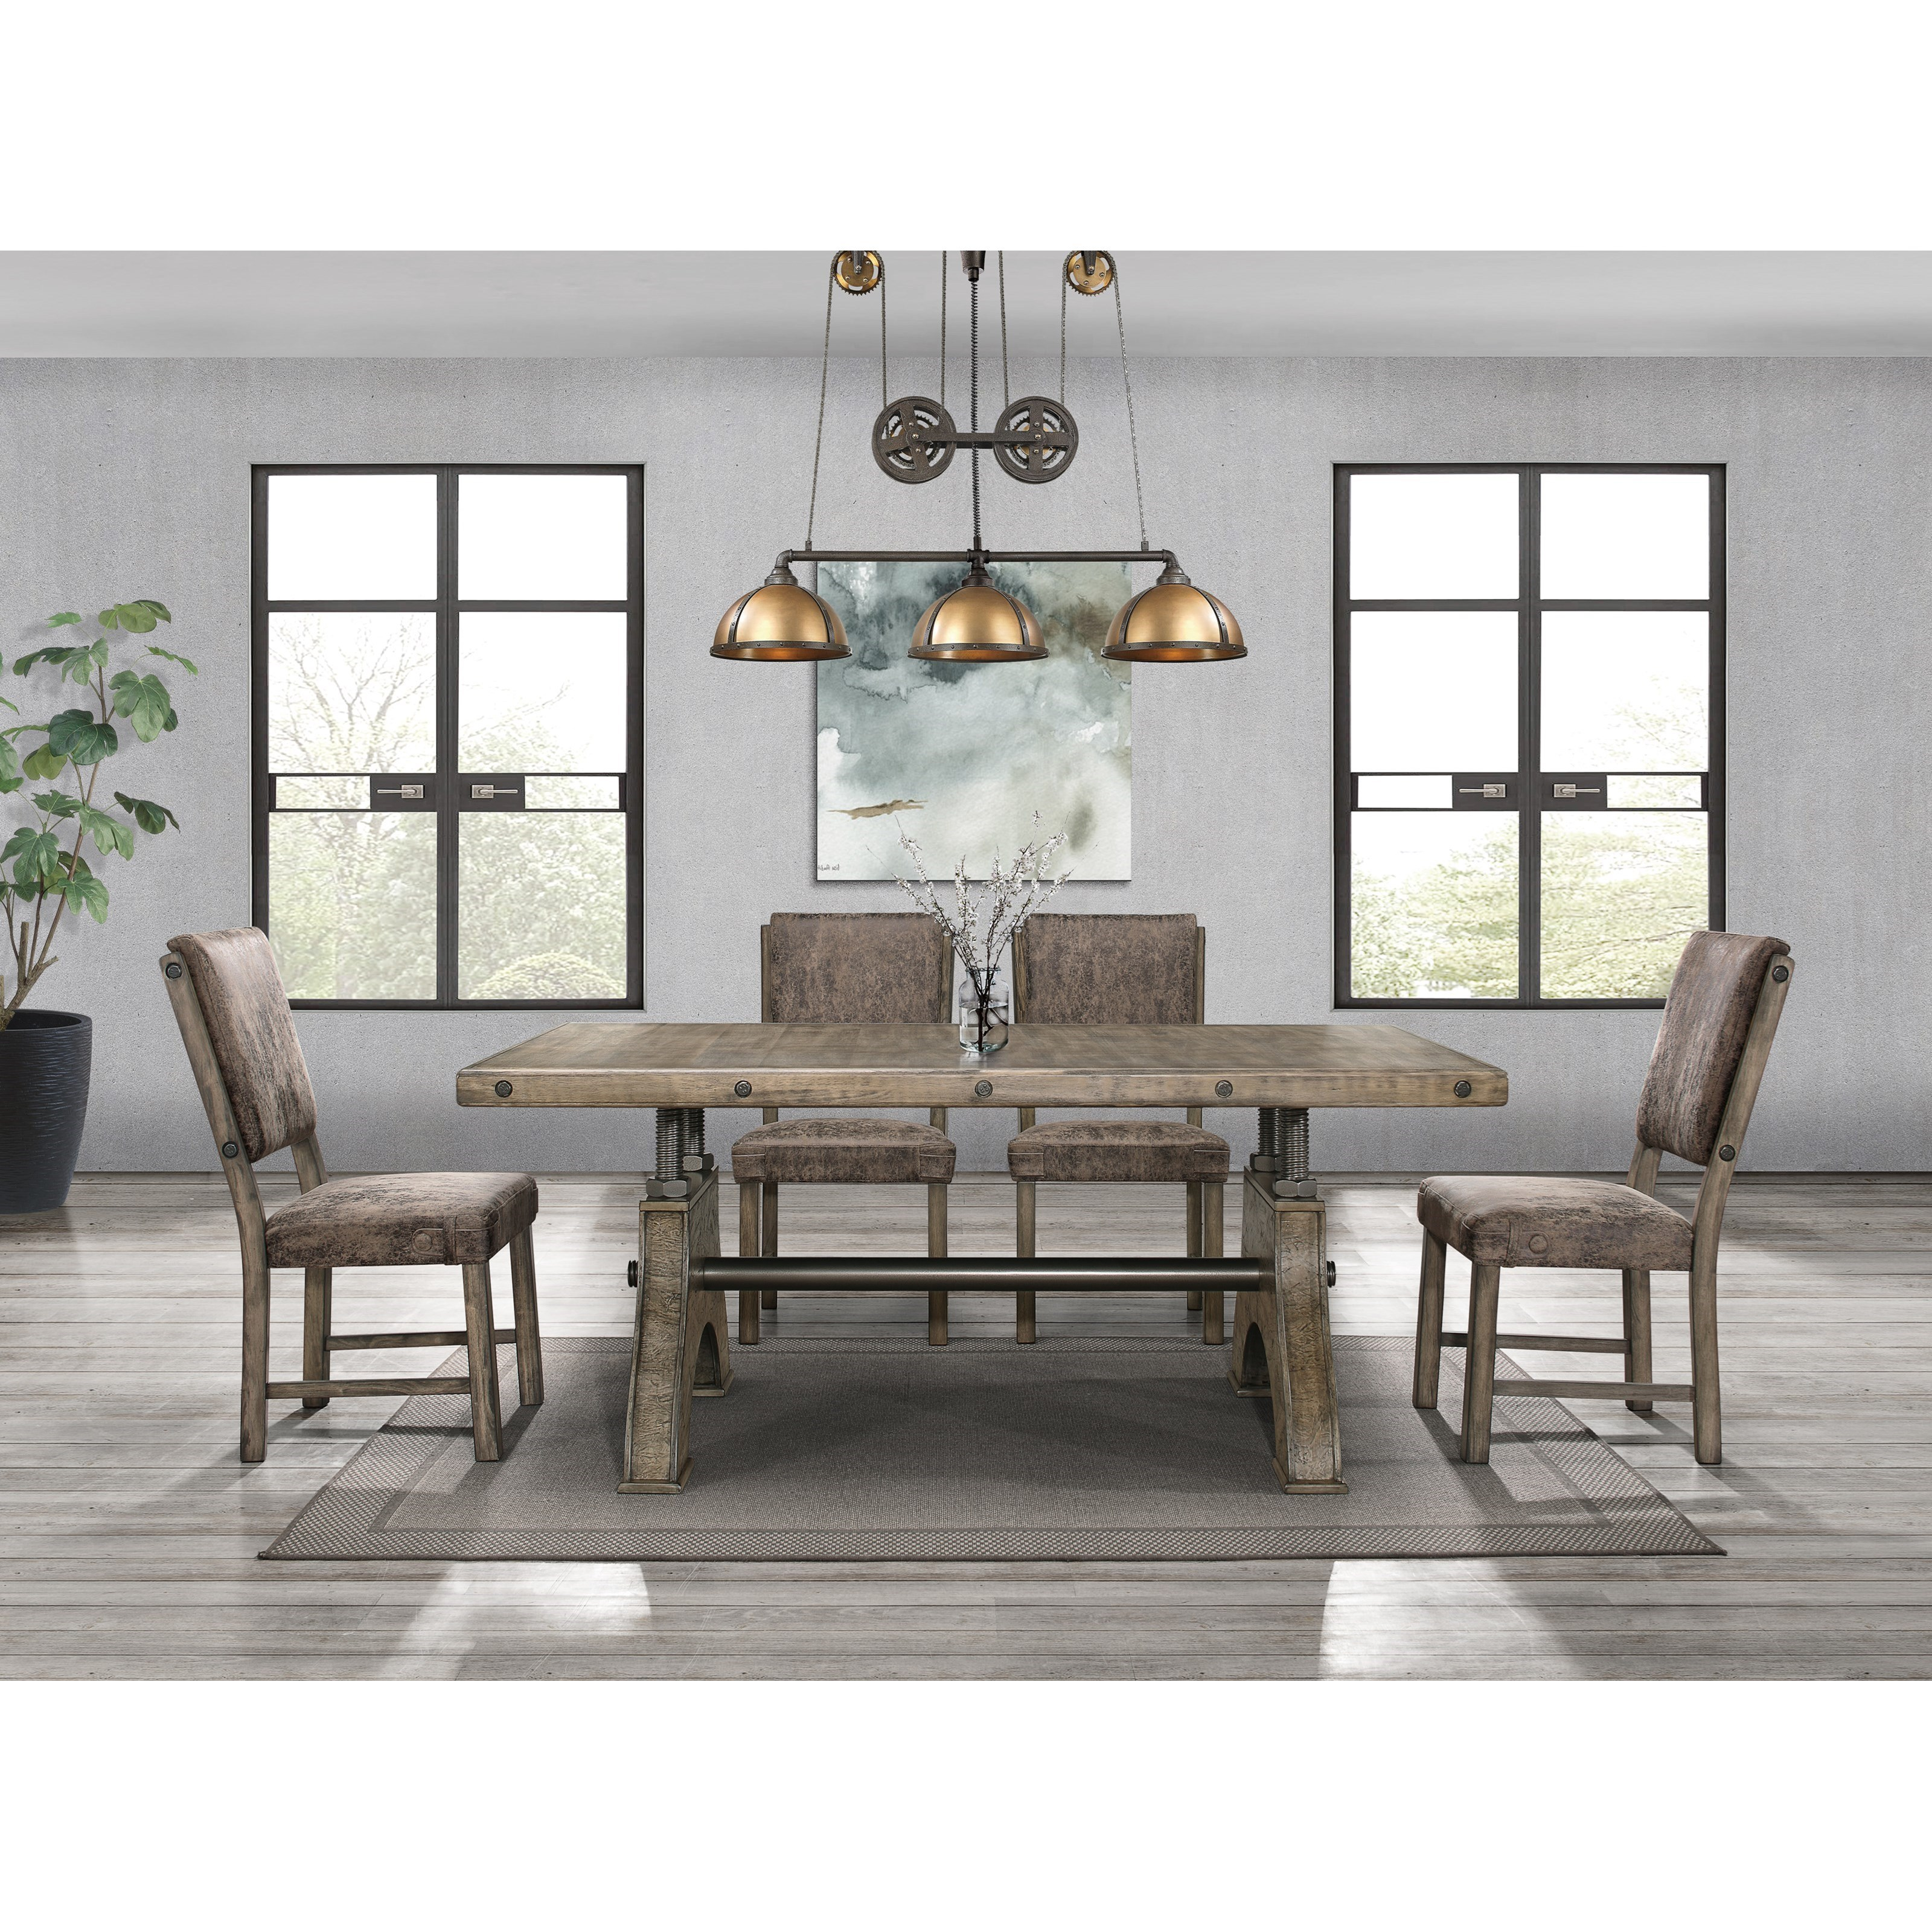 D855 5 Piece Table and Chair Set by Global Furniture at Dream Home Interiors